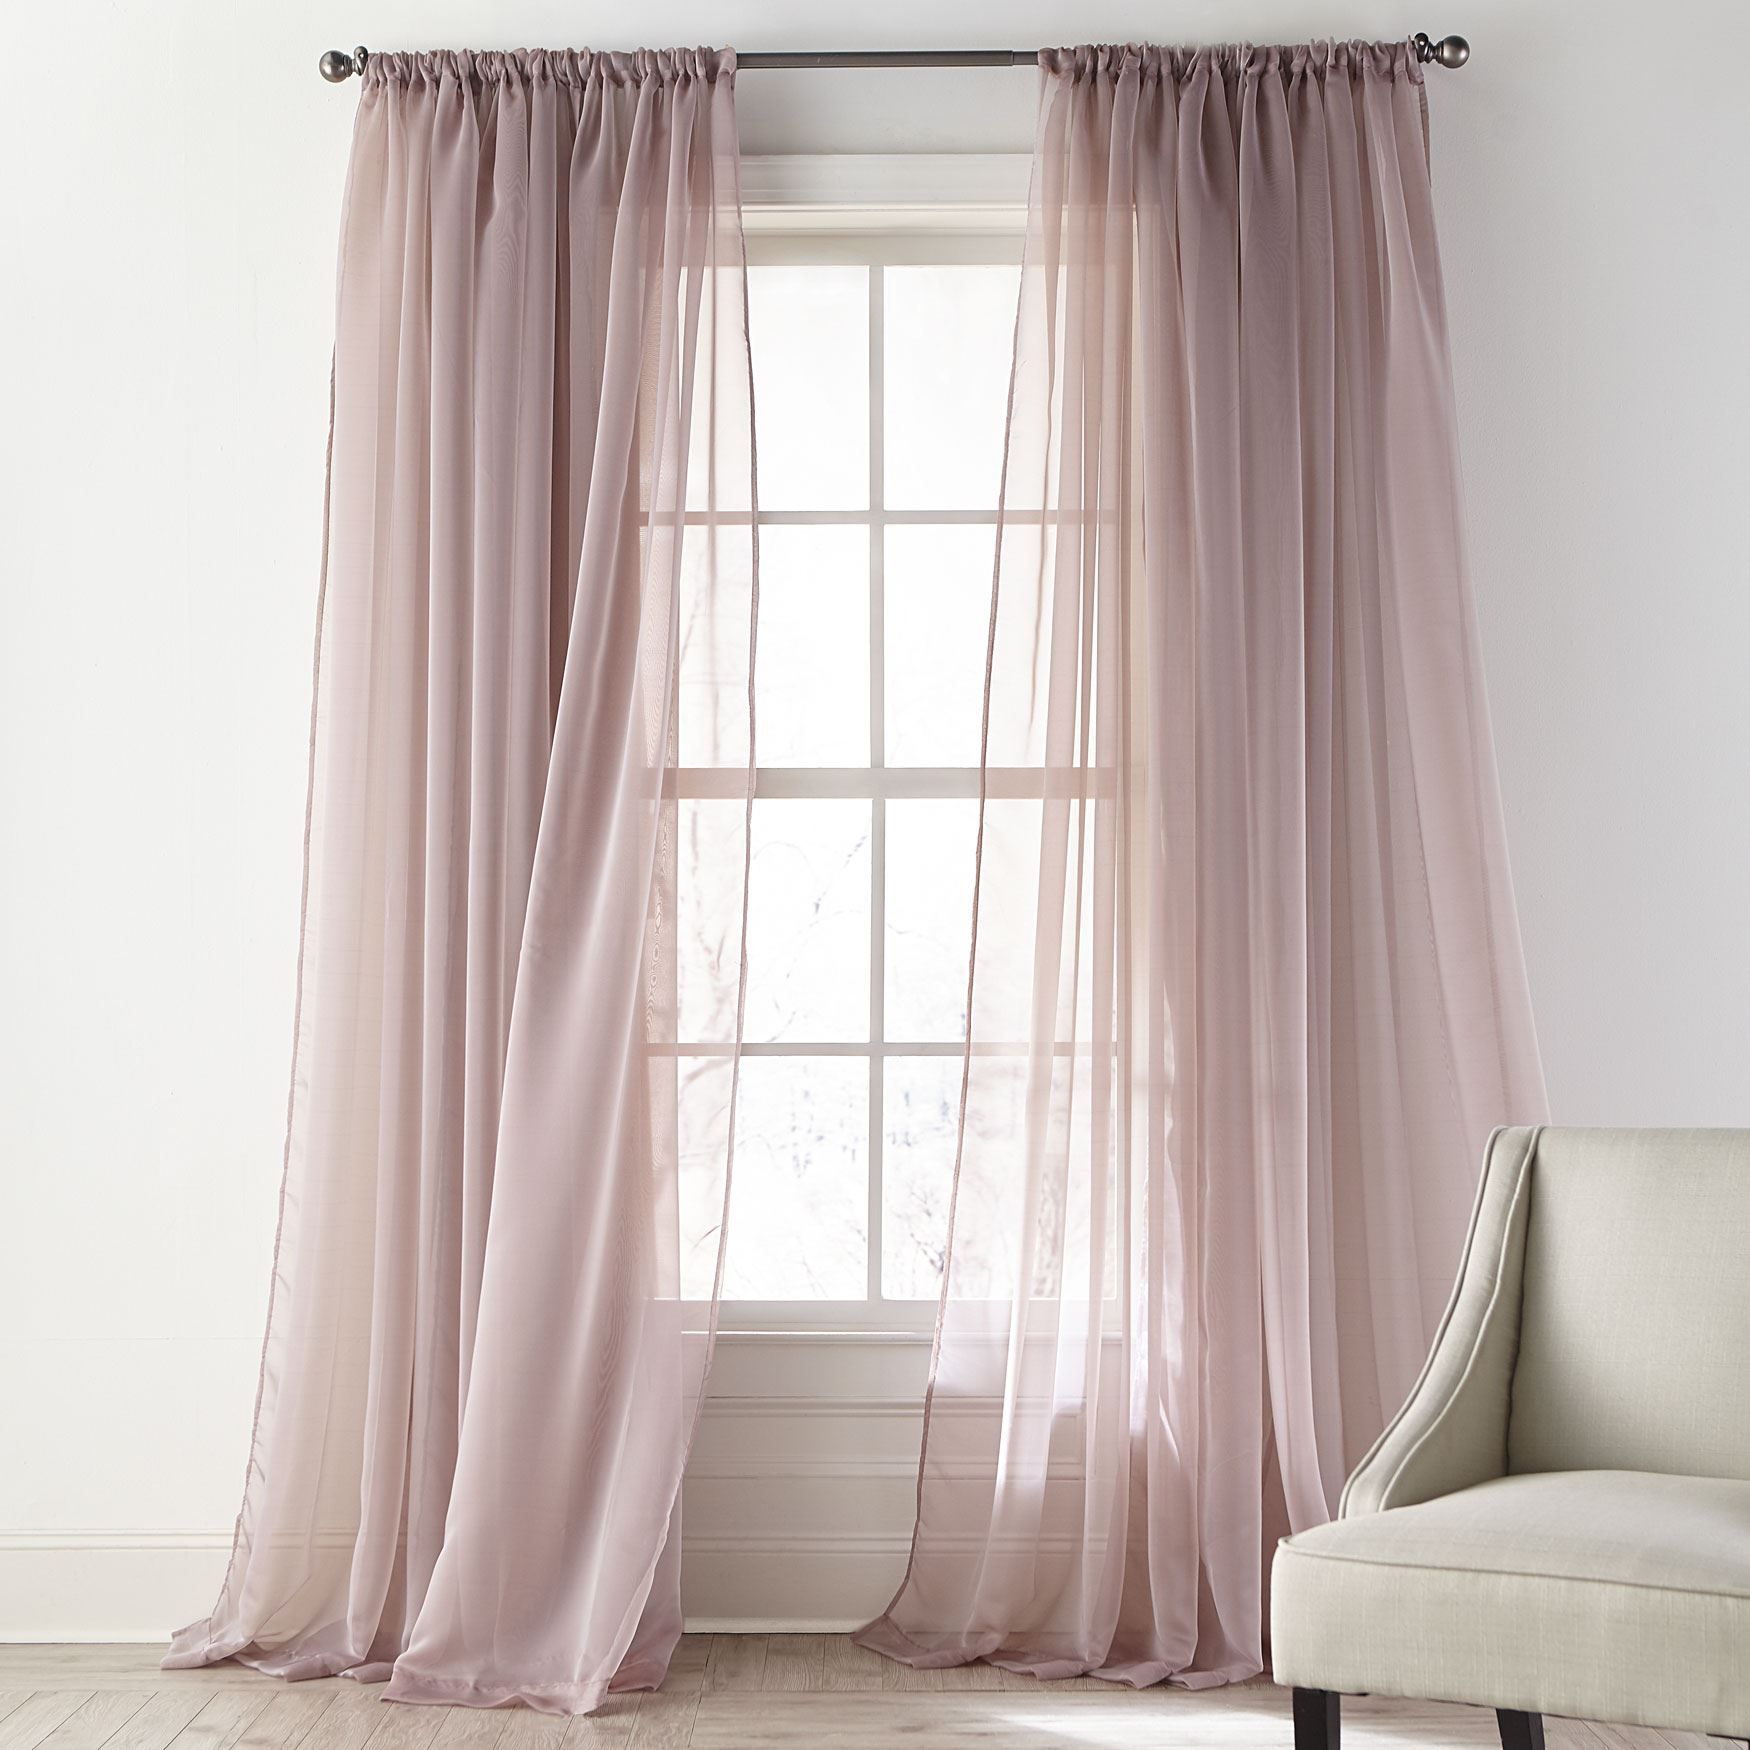 Ophelia Shimmer Curtain Sheer Curtains Brylane Home Sheers Curtains Living Room Sheer Curtains Bedroom Home Curtains #sheers #in #living #room